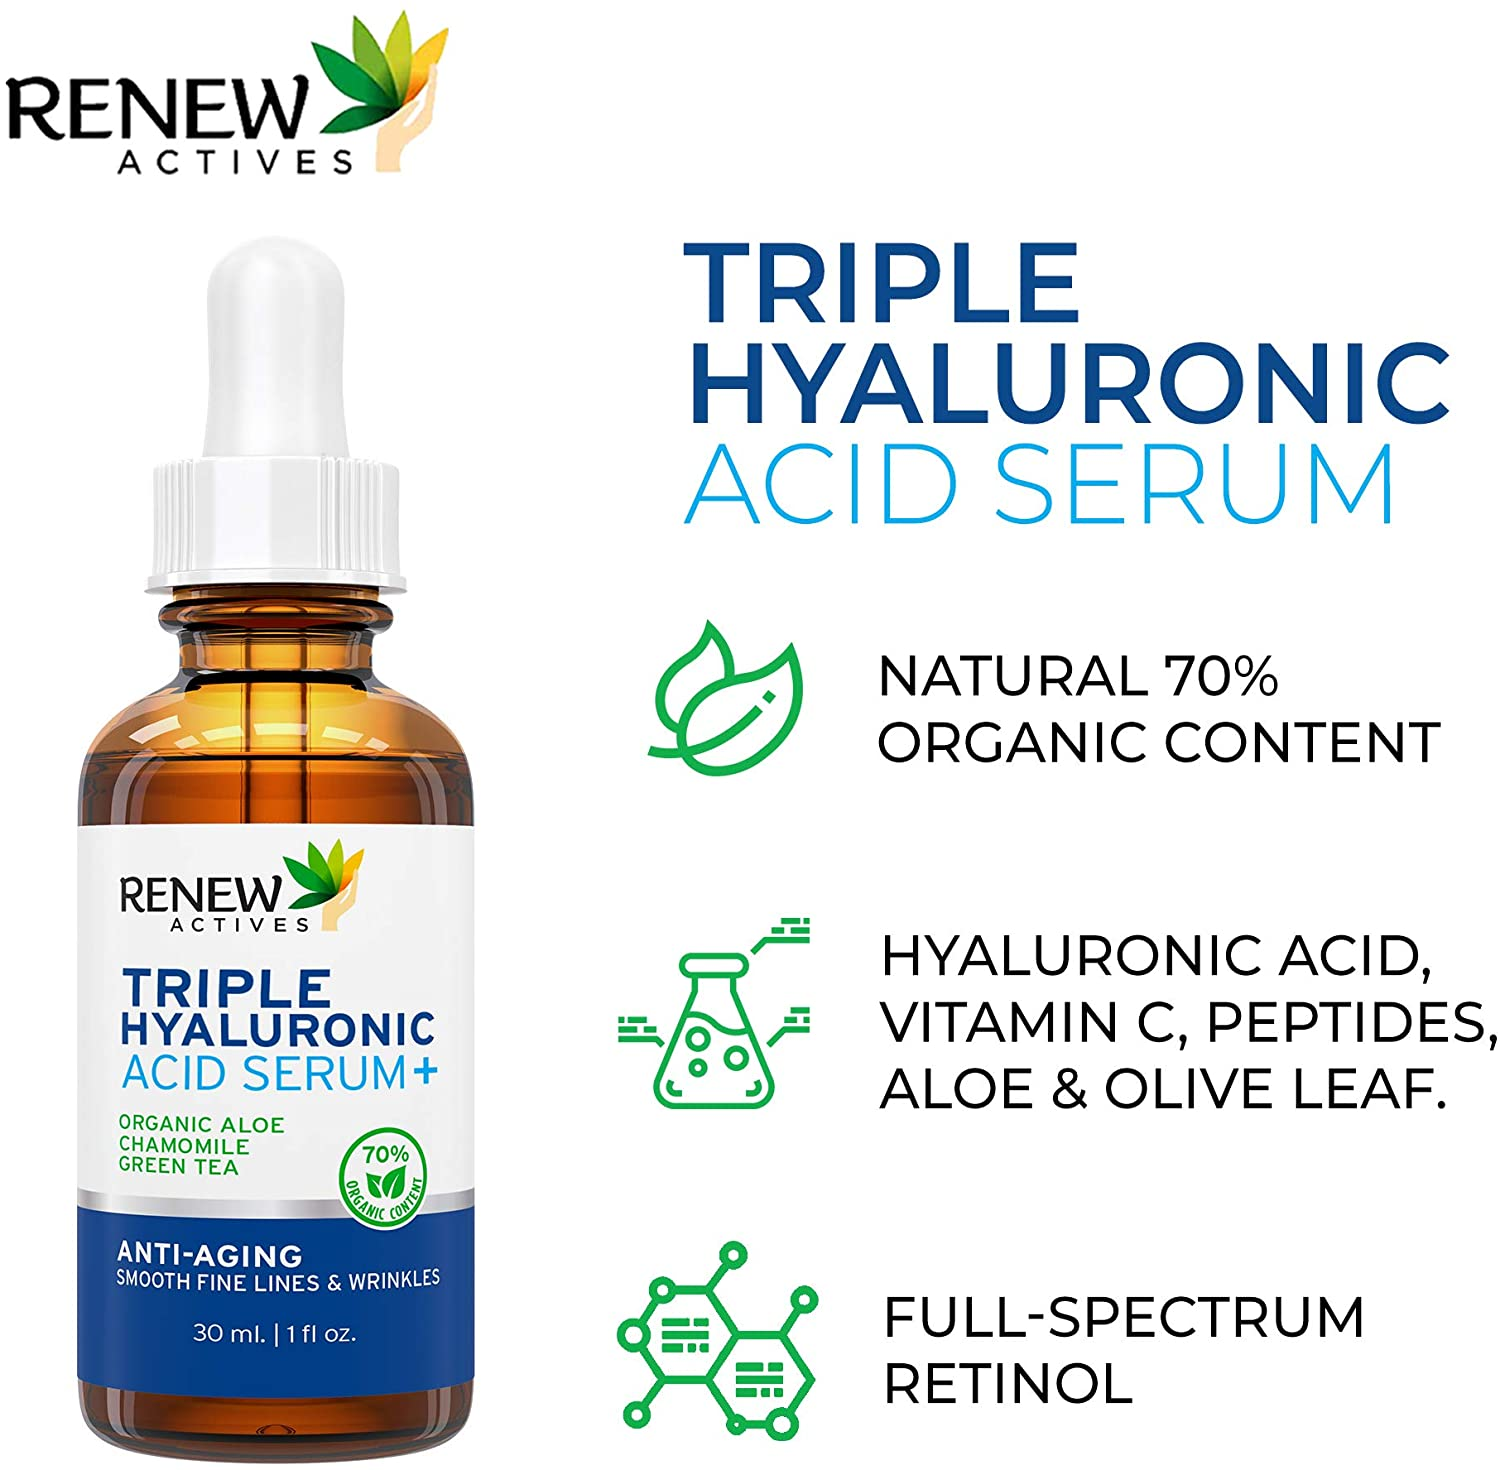 Hyaluronic Acid Serum: Hyaluronic Acid Serum for Face